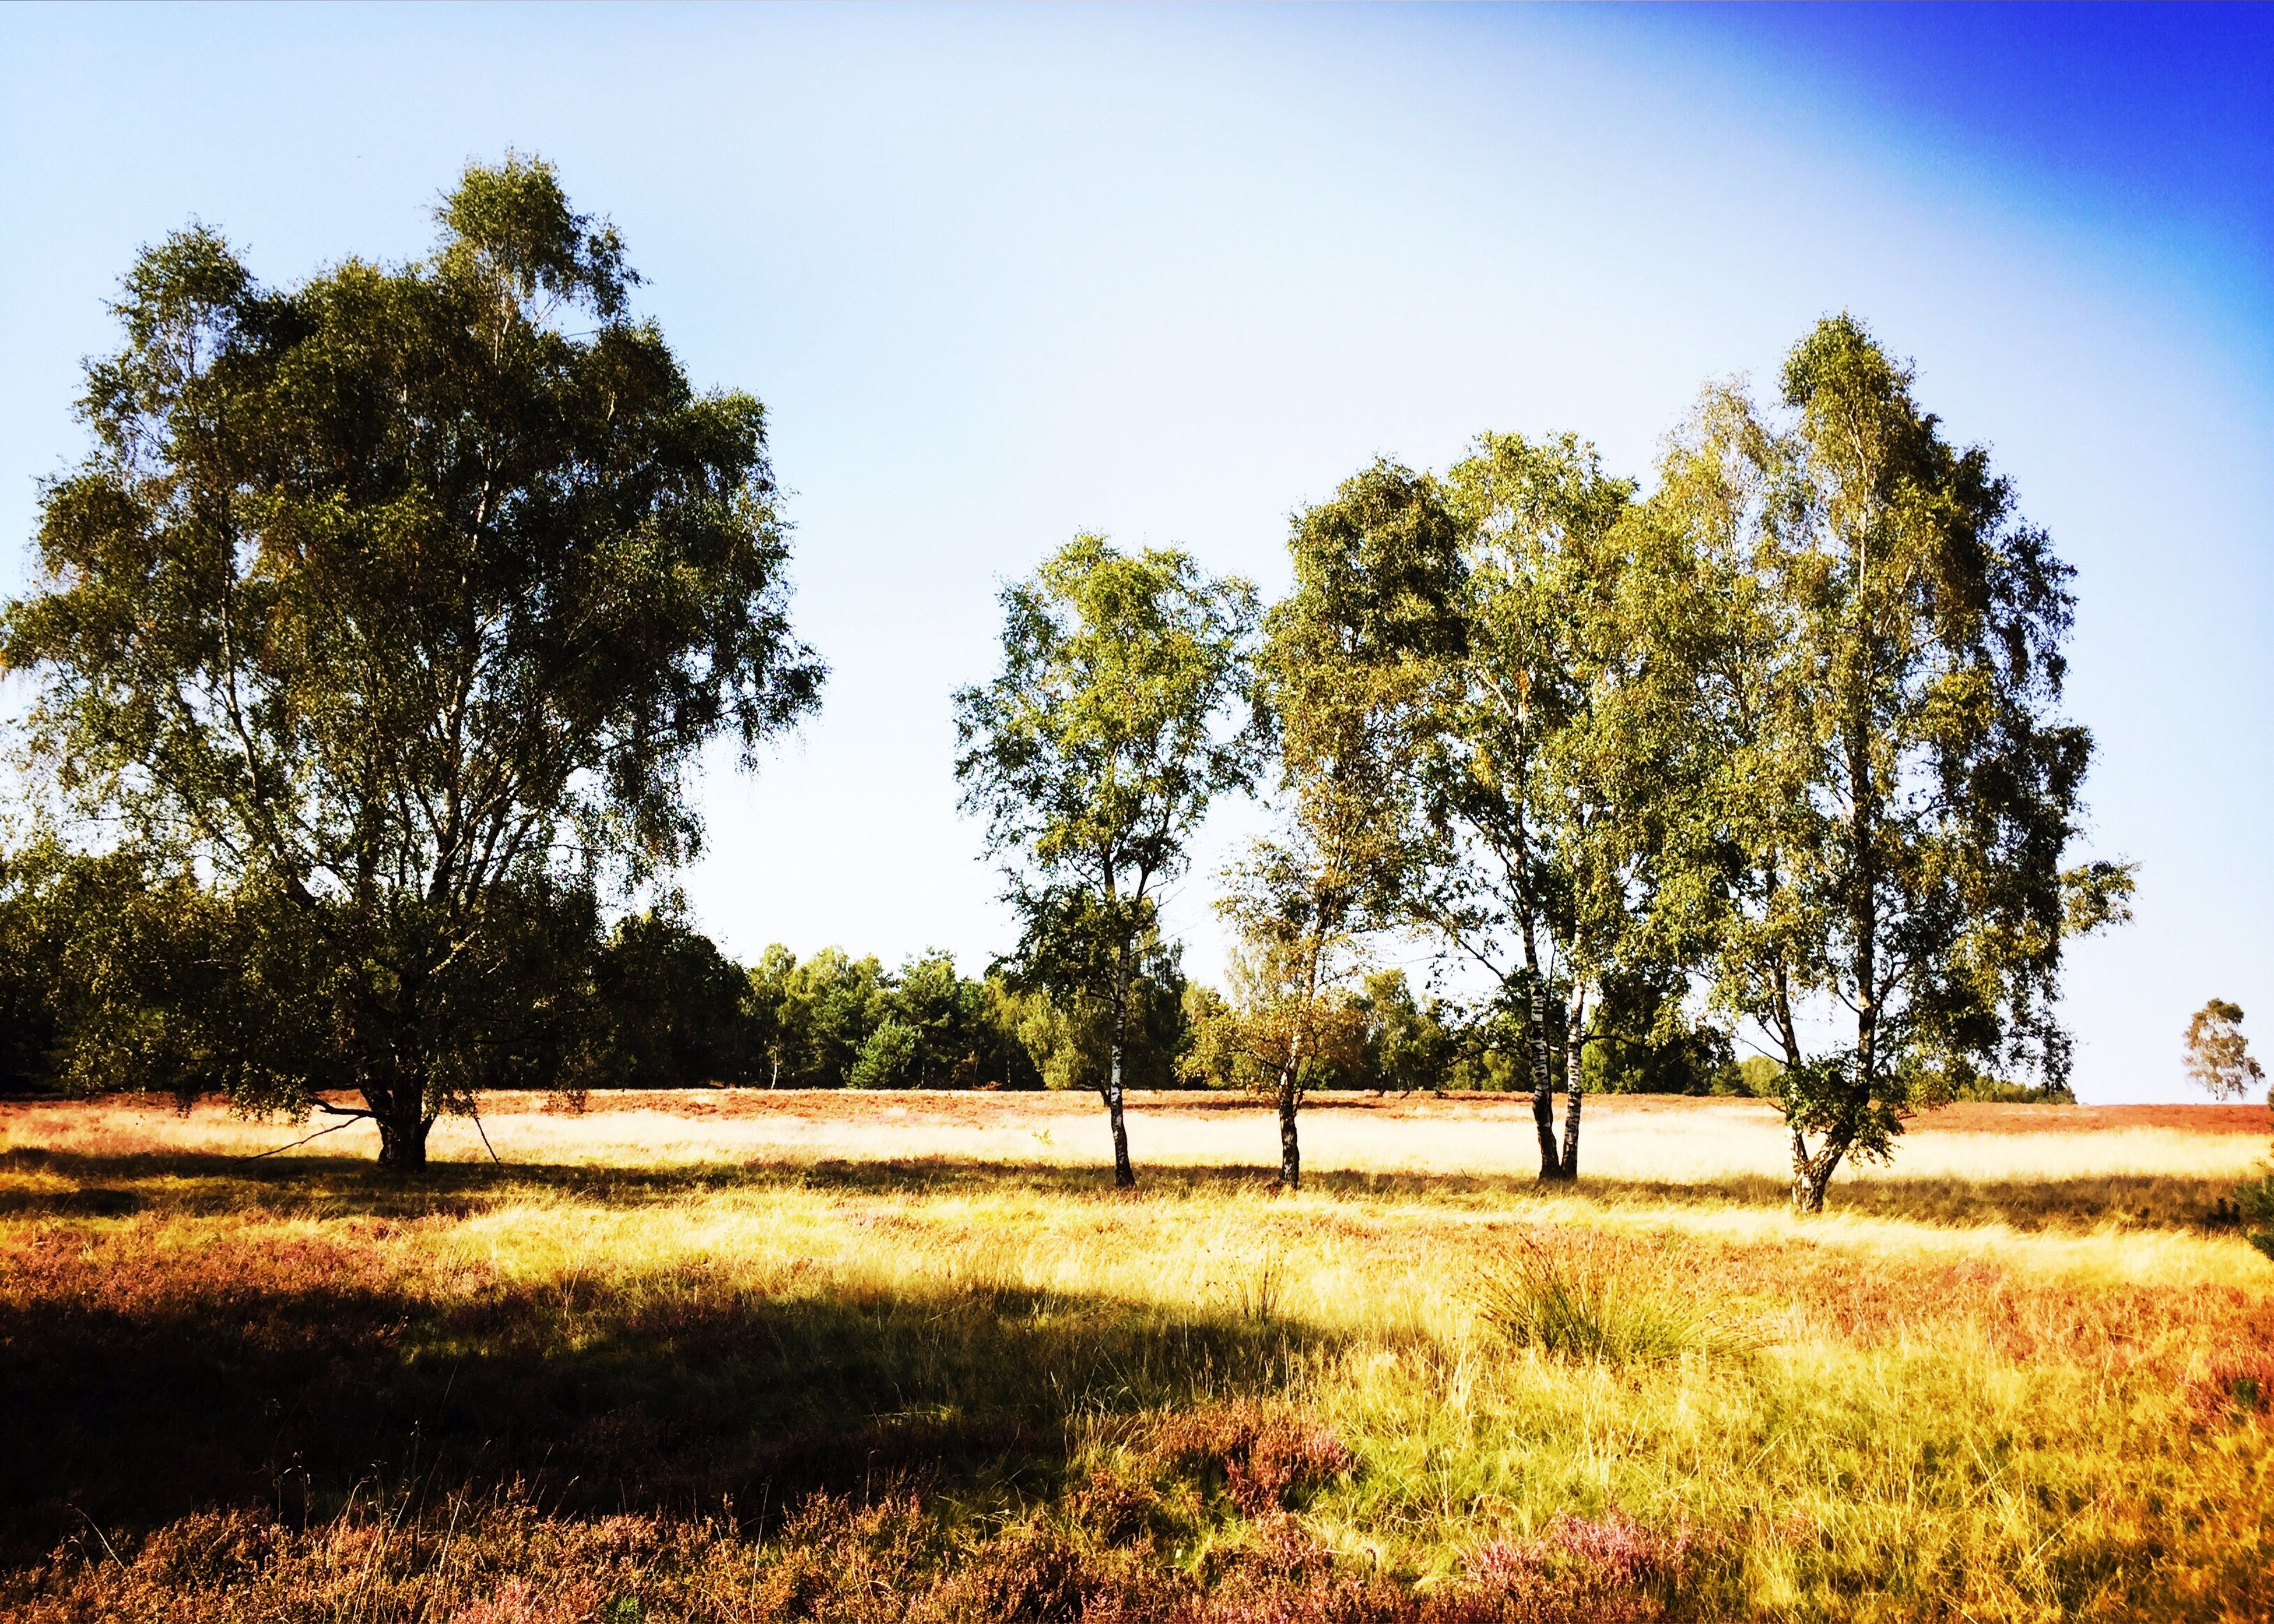 tree, field, tranquil scene, growth, tranquility, scenics, landscape, grass, beauty in nature, clear sky, nature, branch, blue, agriculture, grassy, green color, day, rural scene, solitude, remote, outdoors, sky, farm, single tree, non-urban scene, no people, countryside, cultivated land, growing